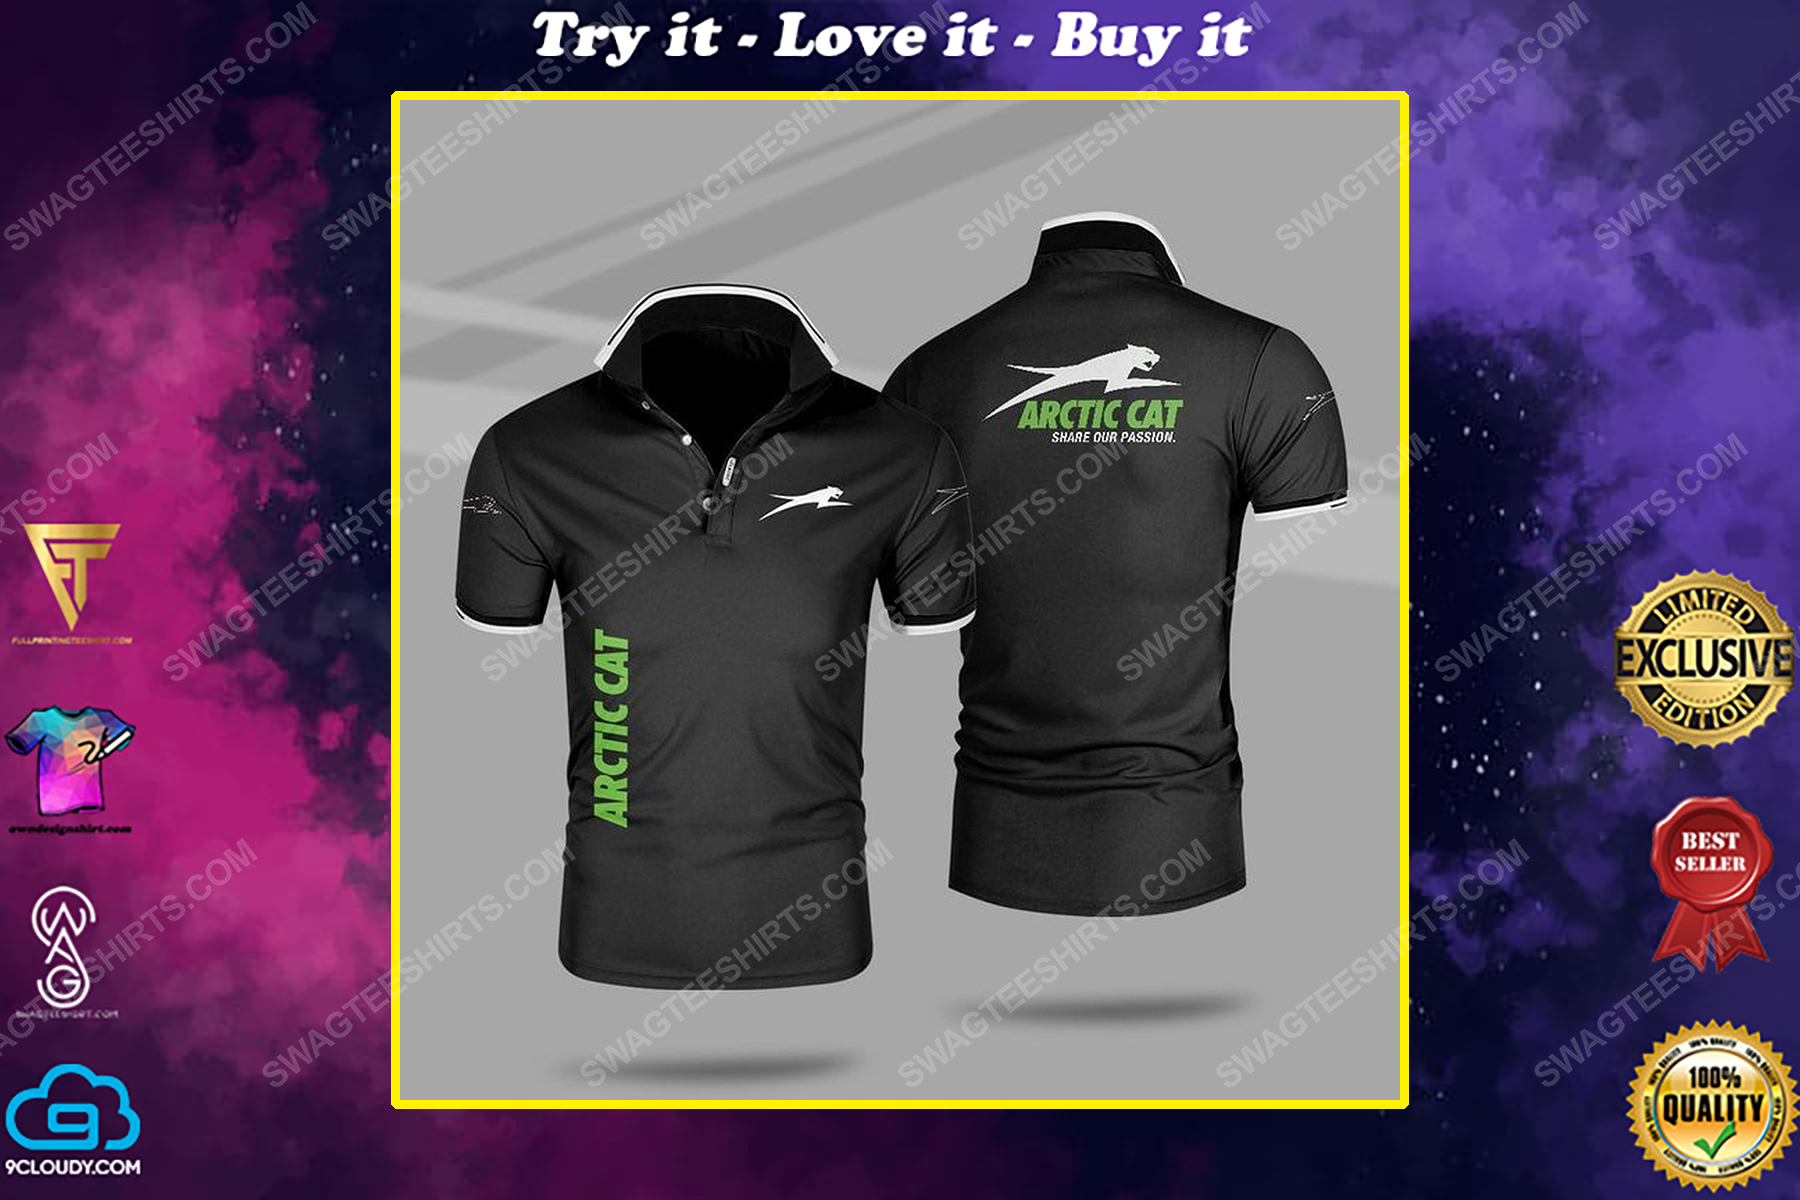 Arctic cat share our passion all over print polo shirt